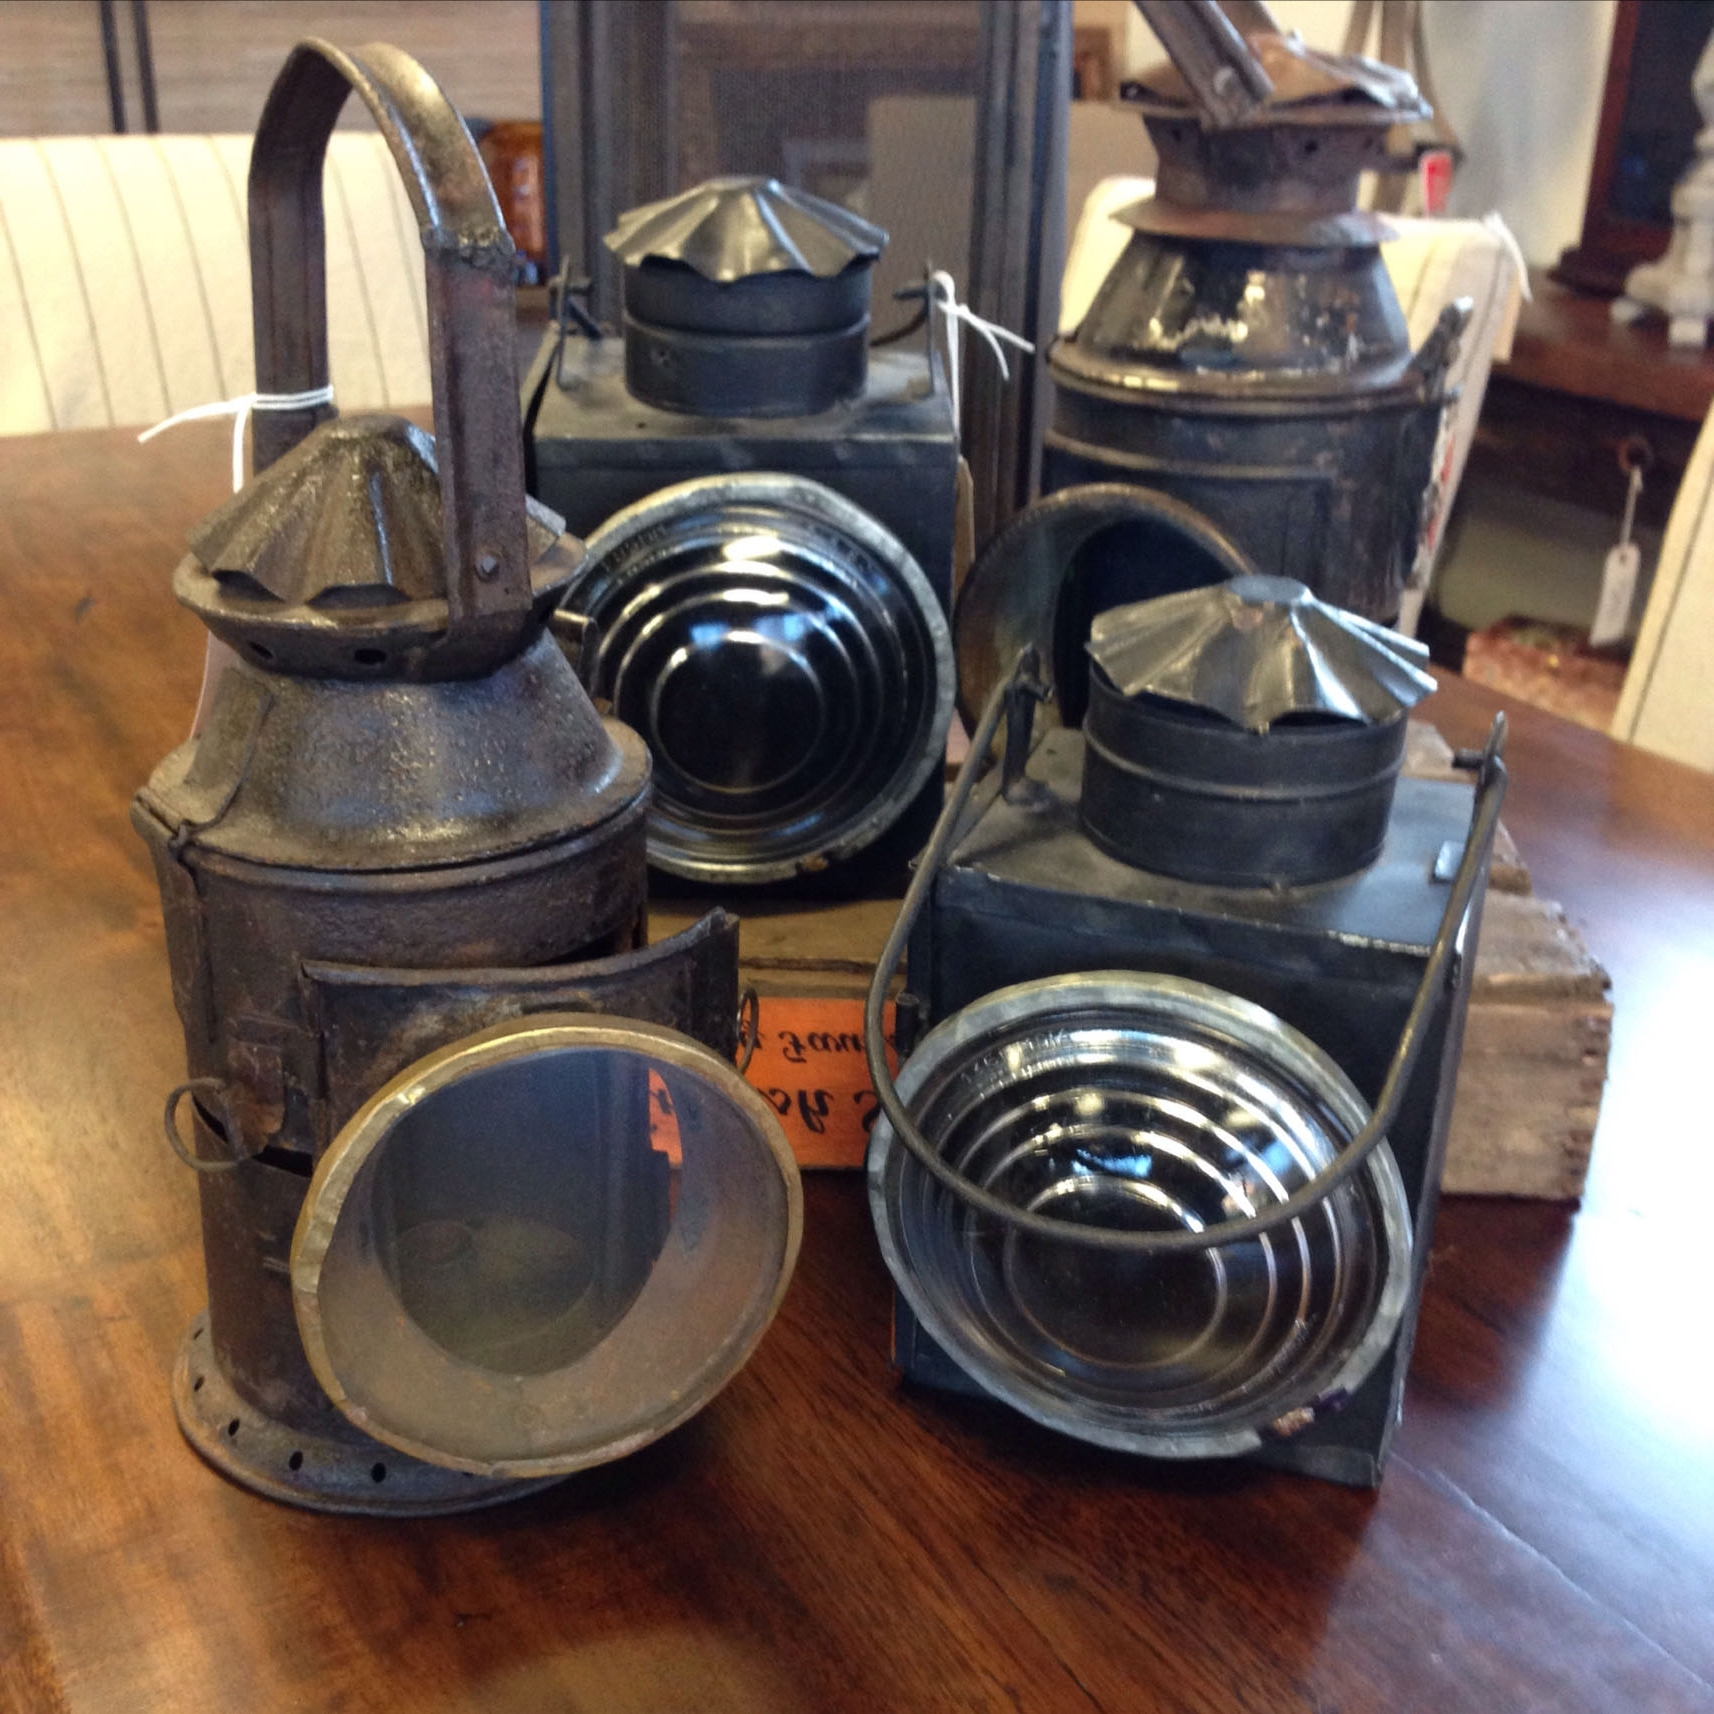 Authentic Antique Railroad Lanterns – Kudzu Antiques Inside Well Liked Outdoor Railroad Lanterns (View 6 of 20)